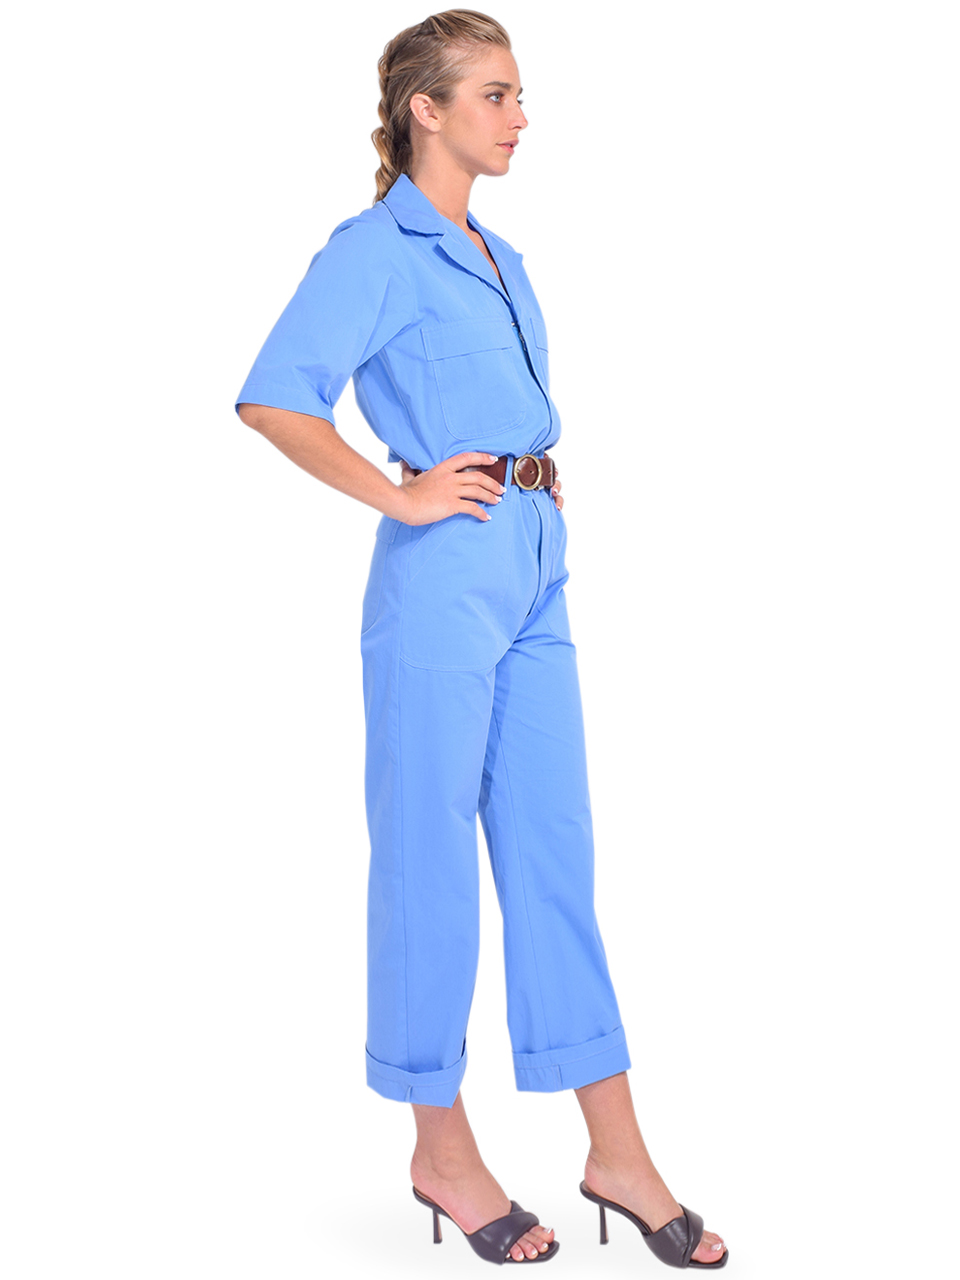 Ottod'Ame Cotton Jumpsuit in Blue Side View Side View